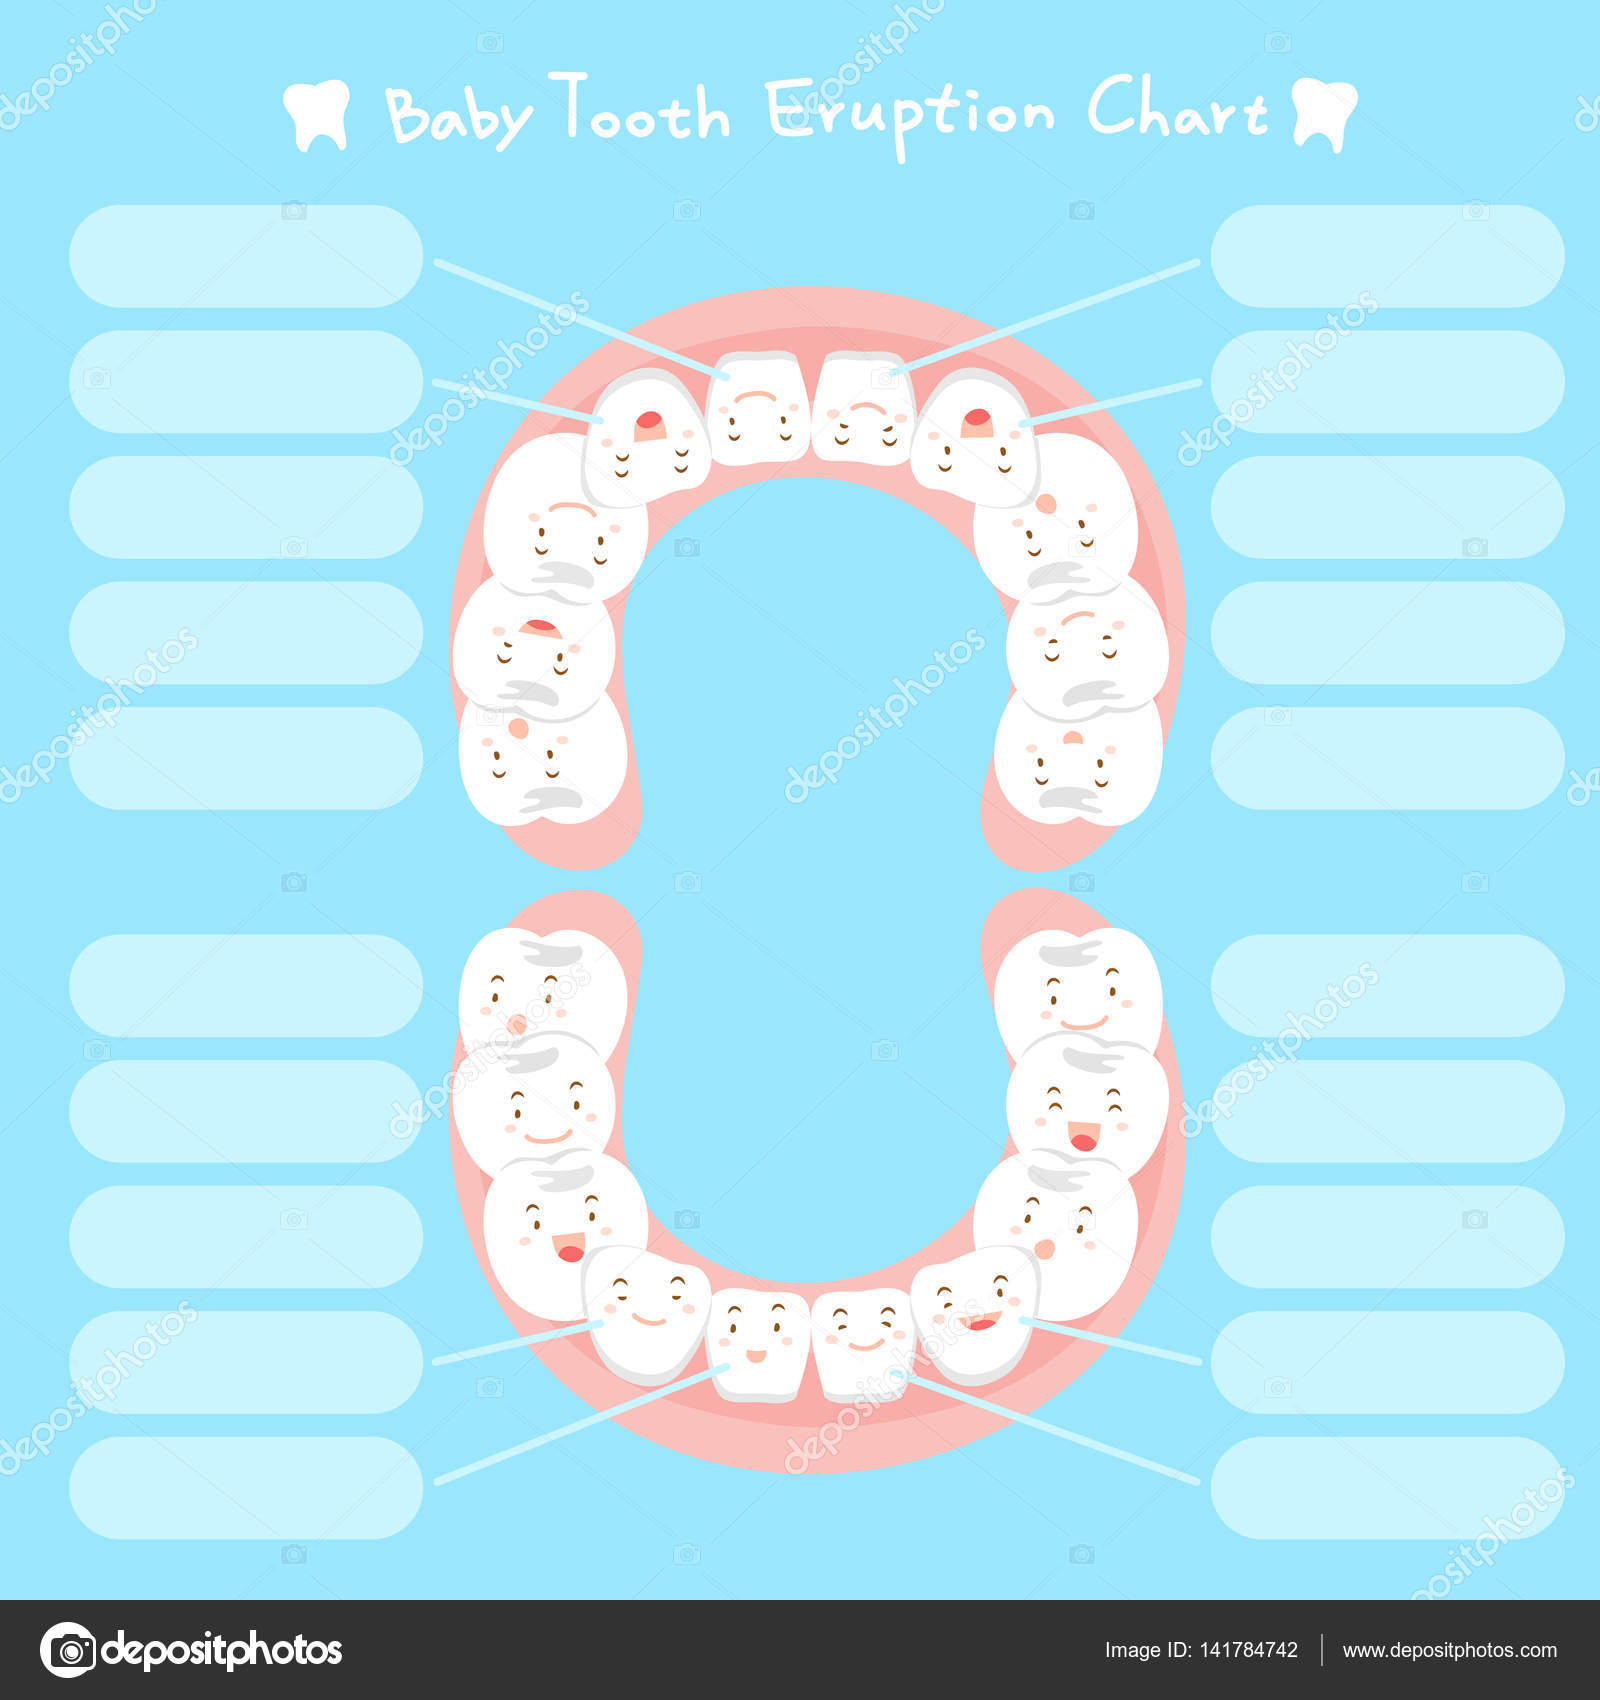 Cartoon baby tooth eruption chart stock vector estherqueen999 cartoon baby tooth eruption chart stock vector ccuart Image collections